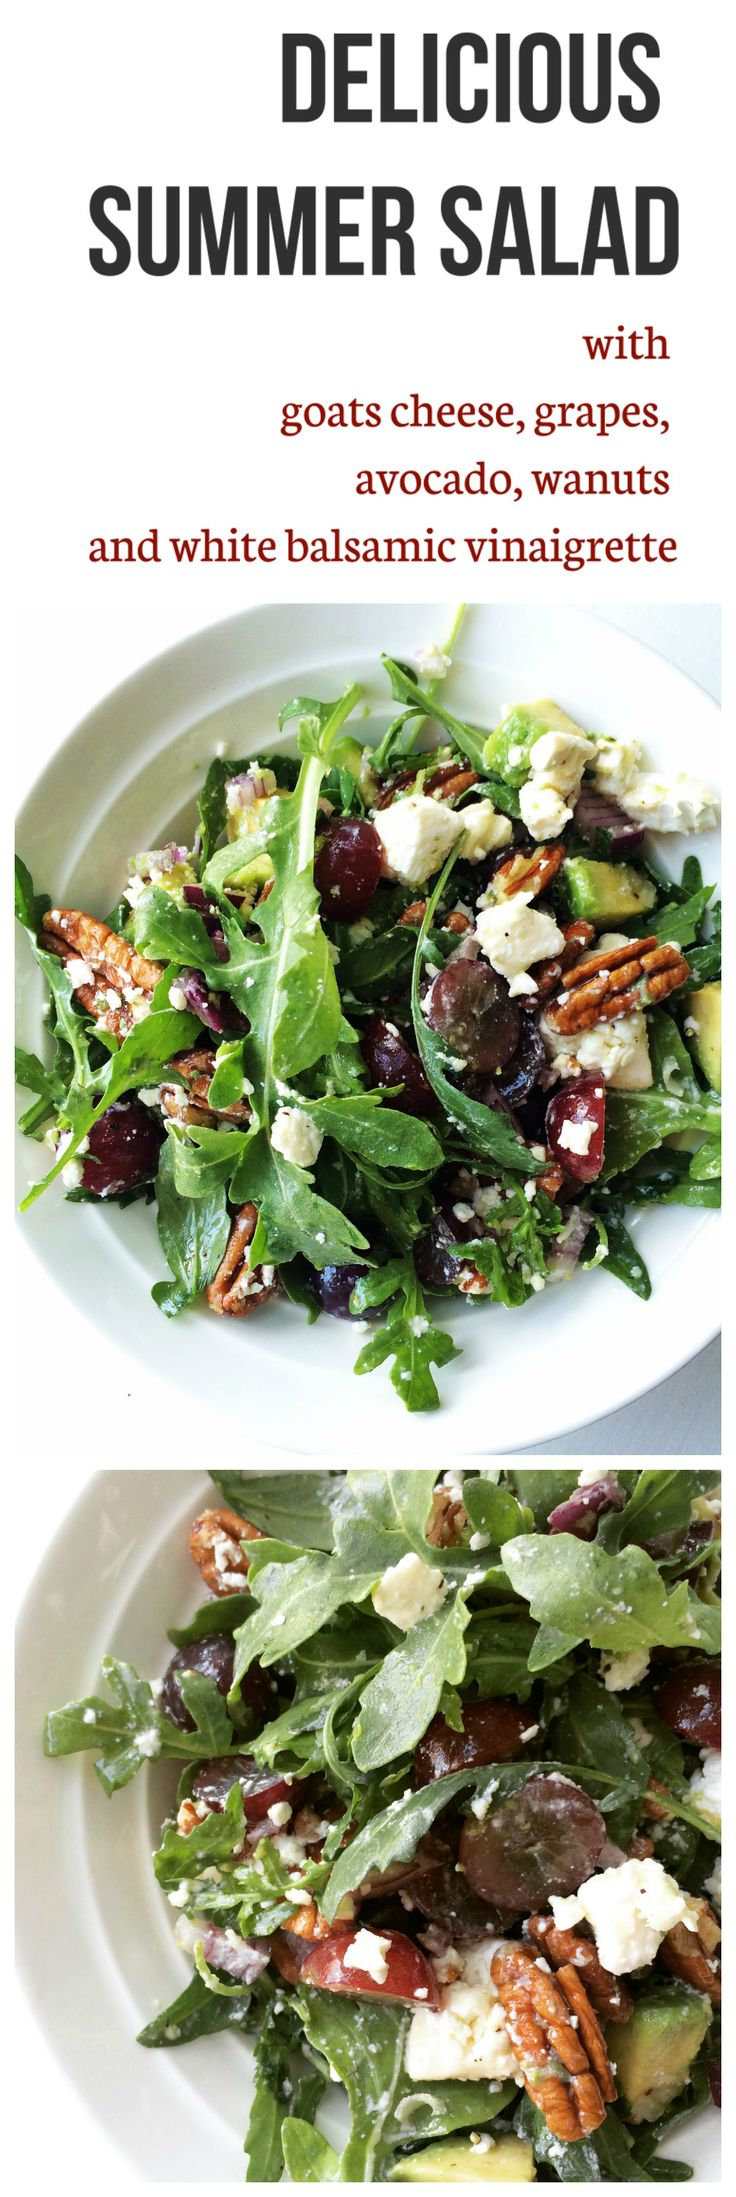 This delicious salad is full of awesome and fresh flavours, perfect for summer.